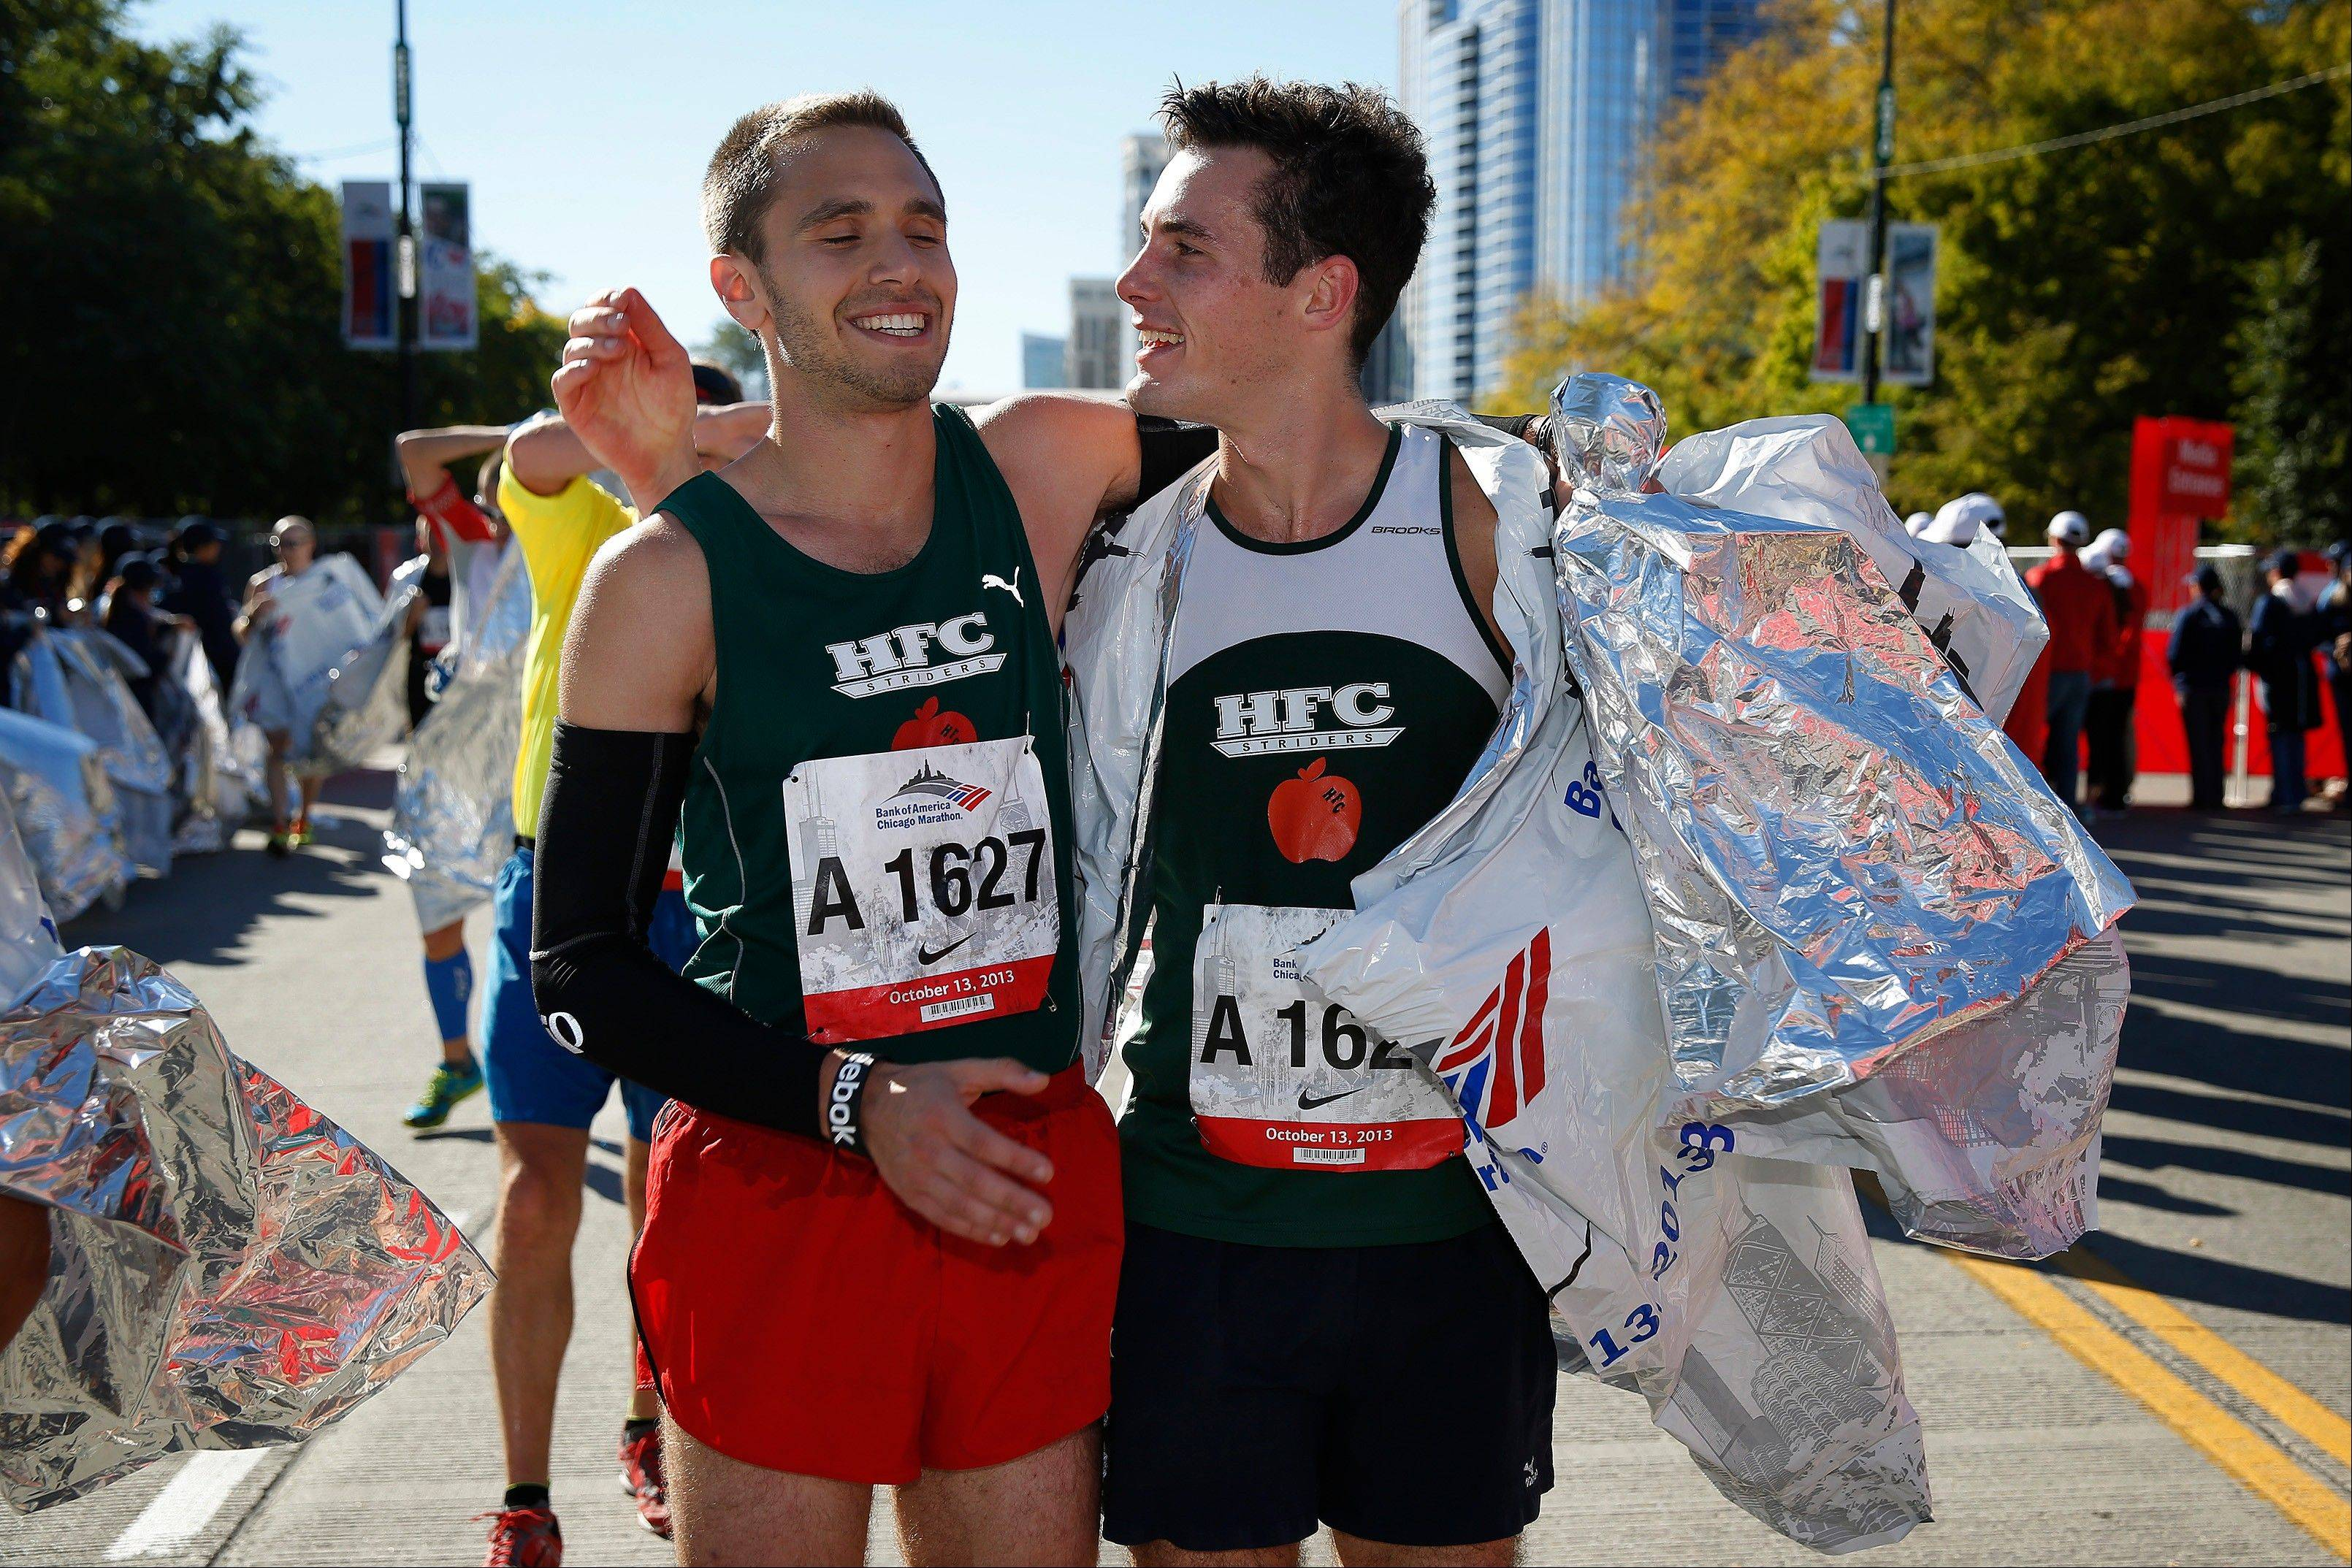 Andrew Holmes, left, of Newton, Mass., and Peter Ryan, right, of Holden, Mass., celebrate after finishing the Chicago Marathon on Sunday, Oct. 13, 2013, in Chicago.